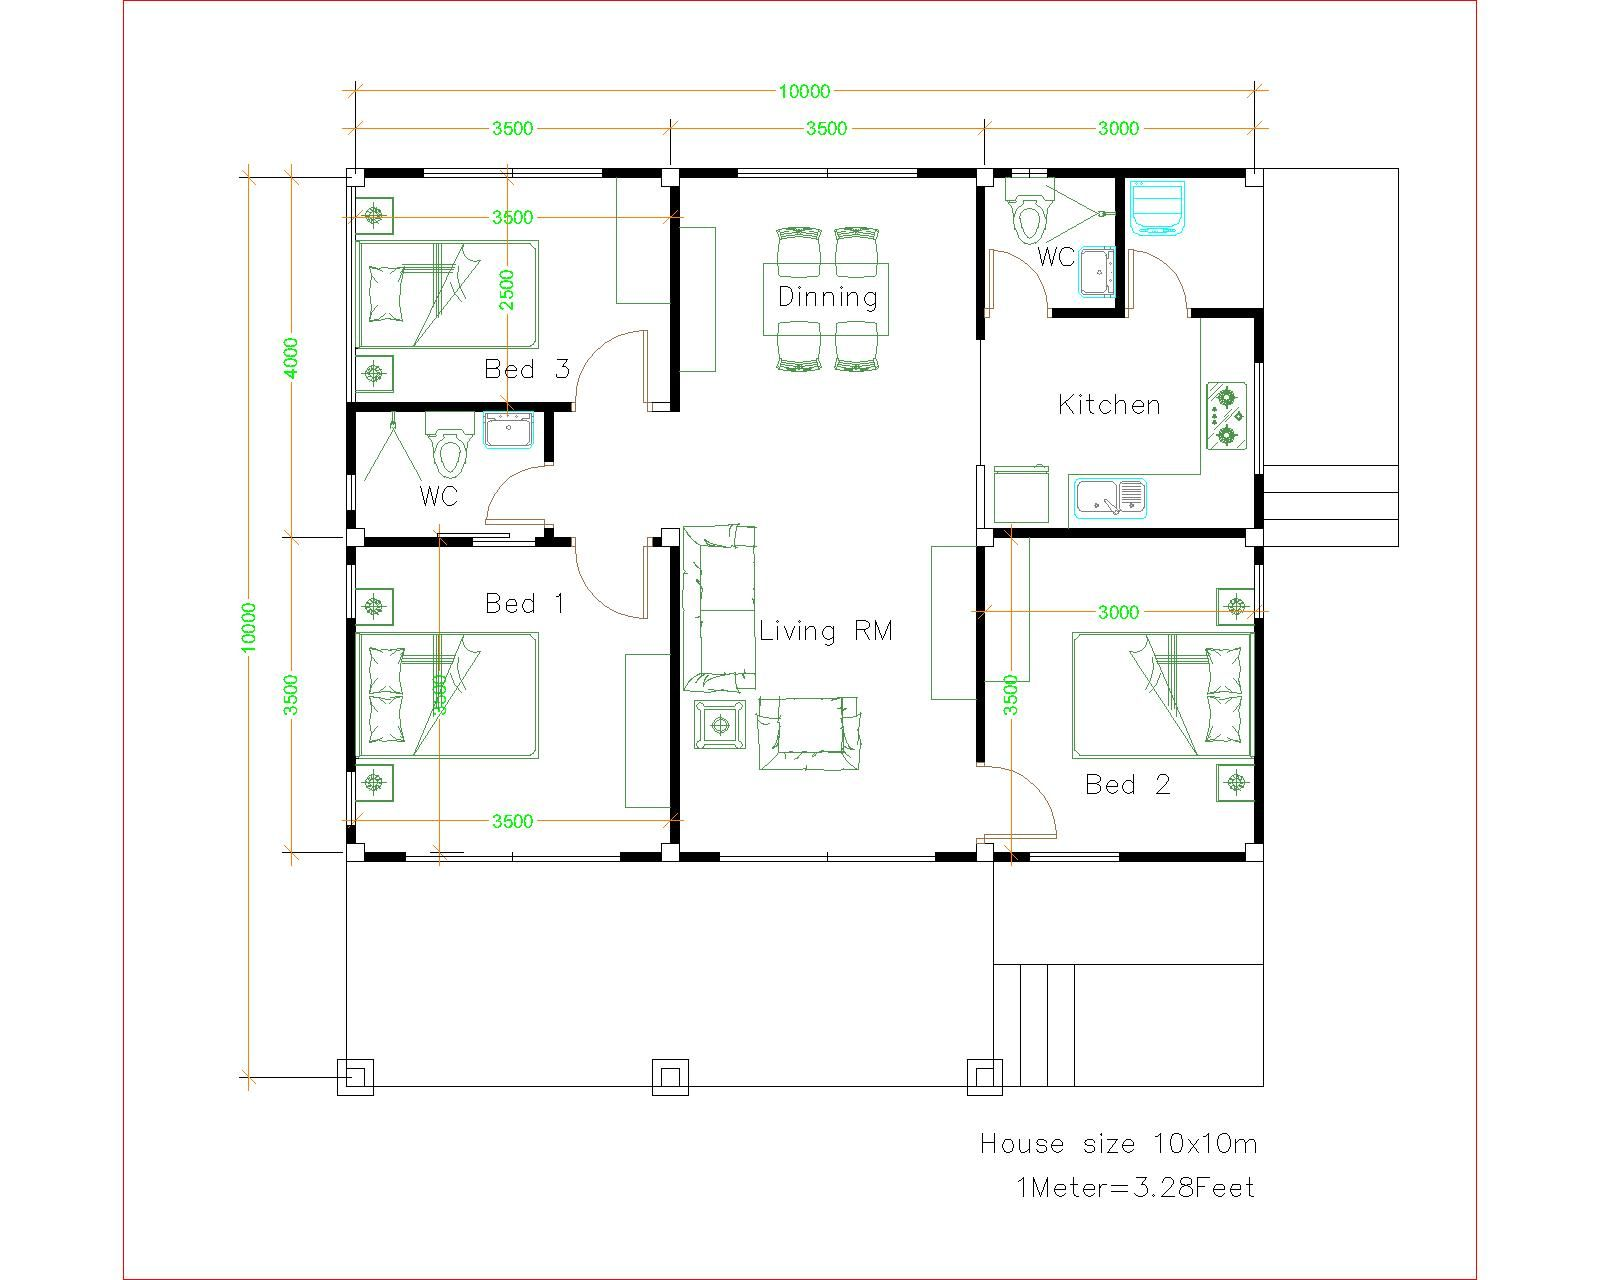 House Design 10x10 With 3 Bedrooms Full Interior House Plans 3d Unique House Plans Small House Design Plans House Layout Plans